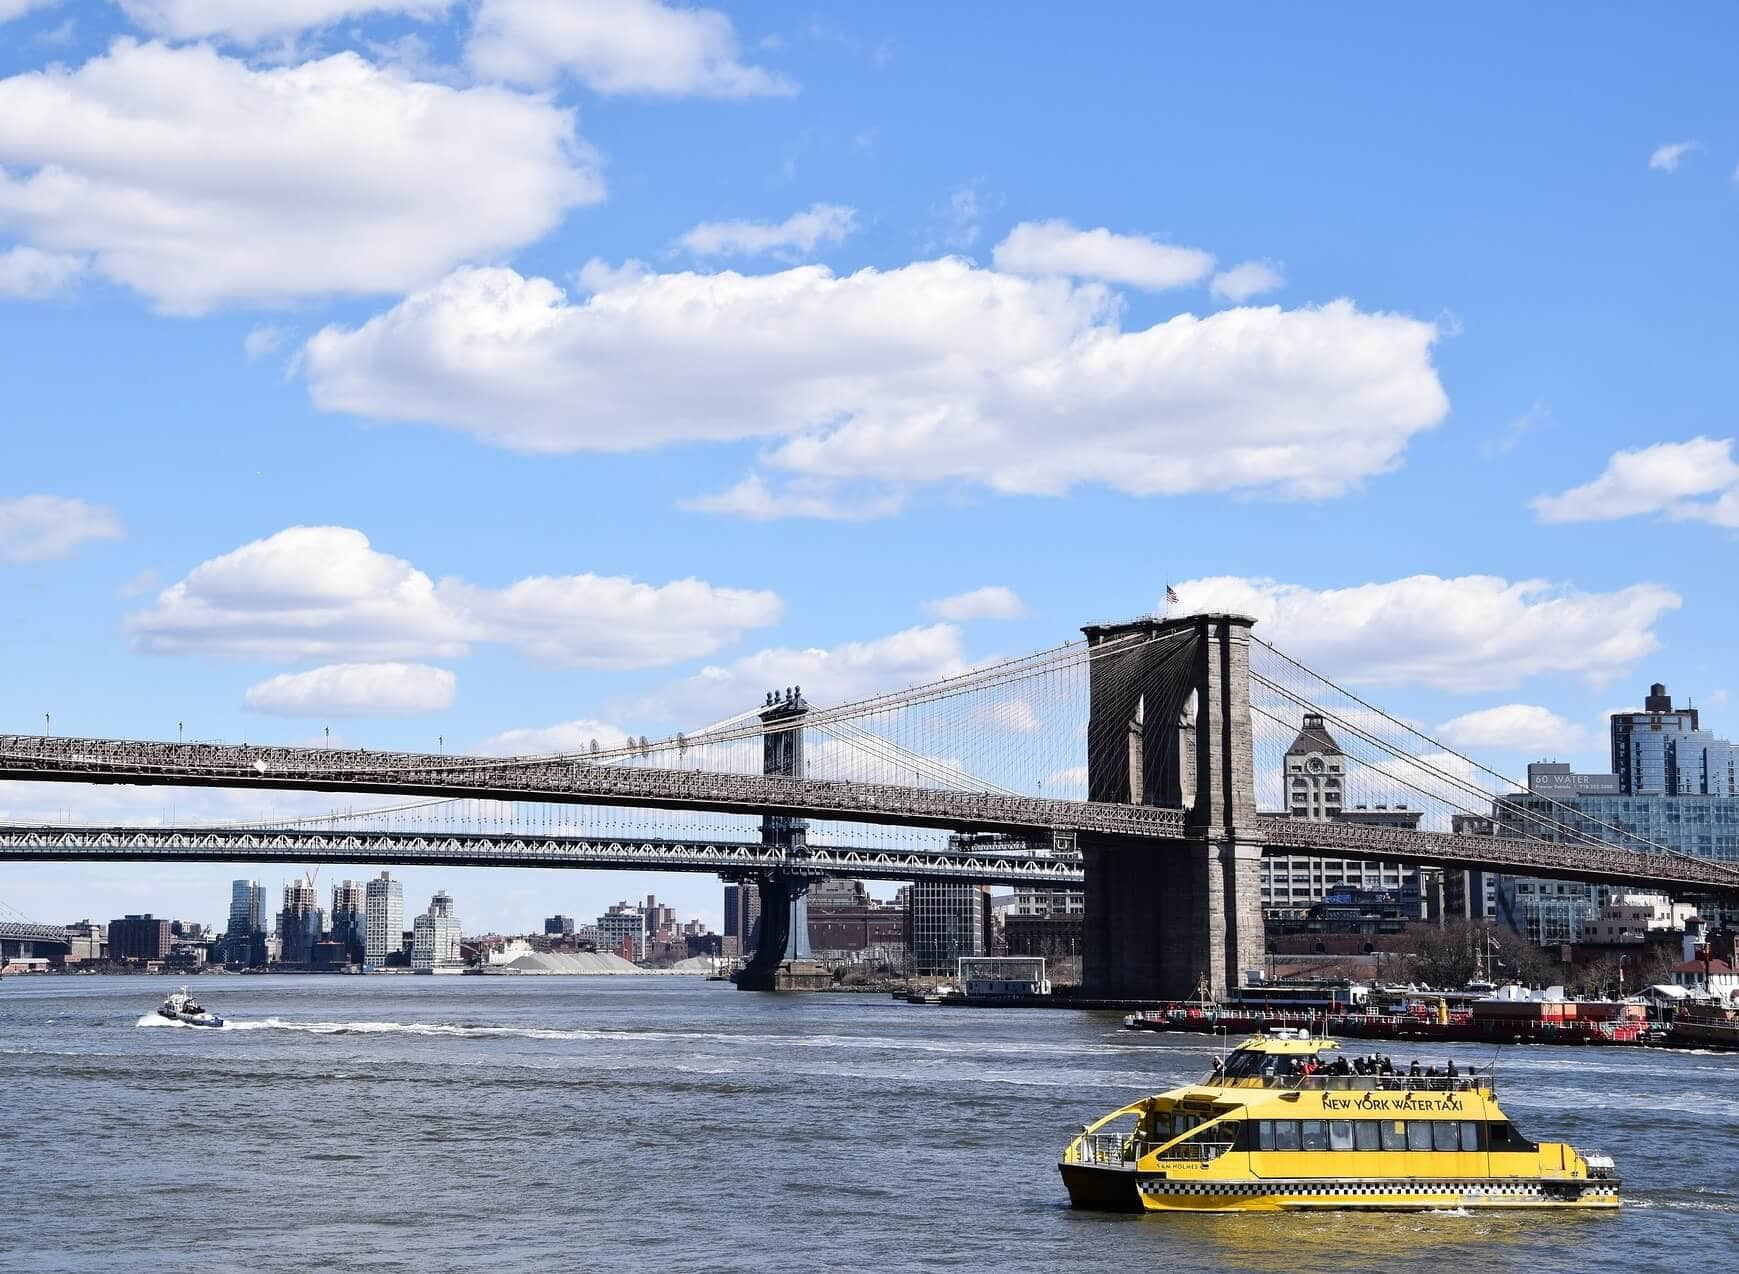 east river, brooklyn bridge, and ferry boat